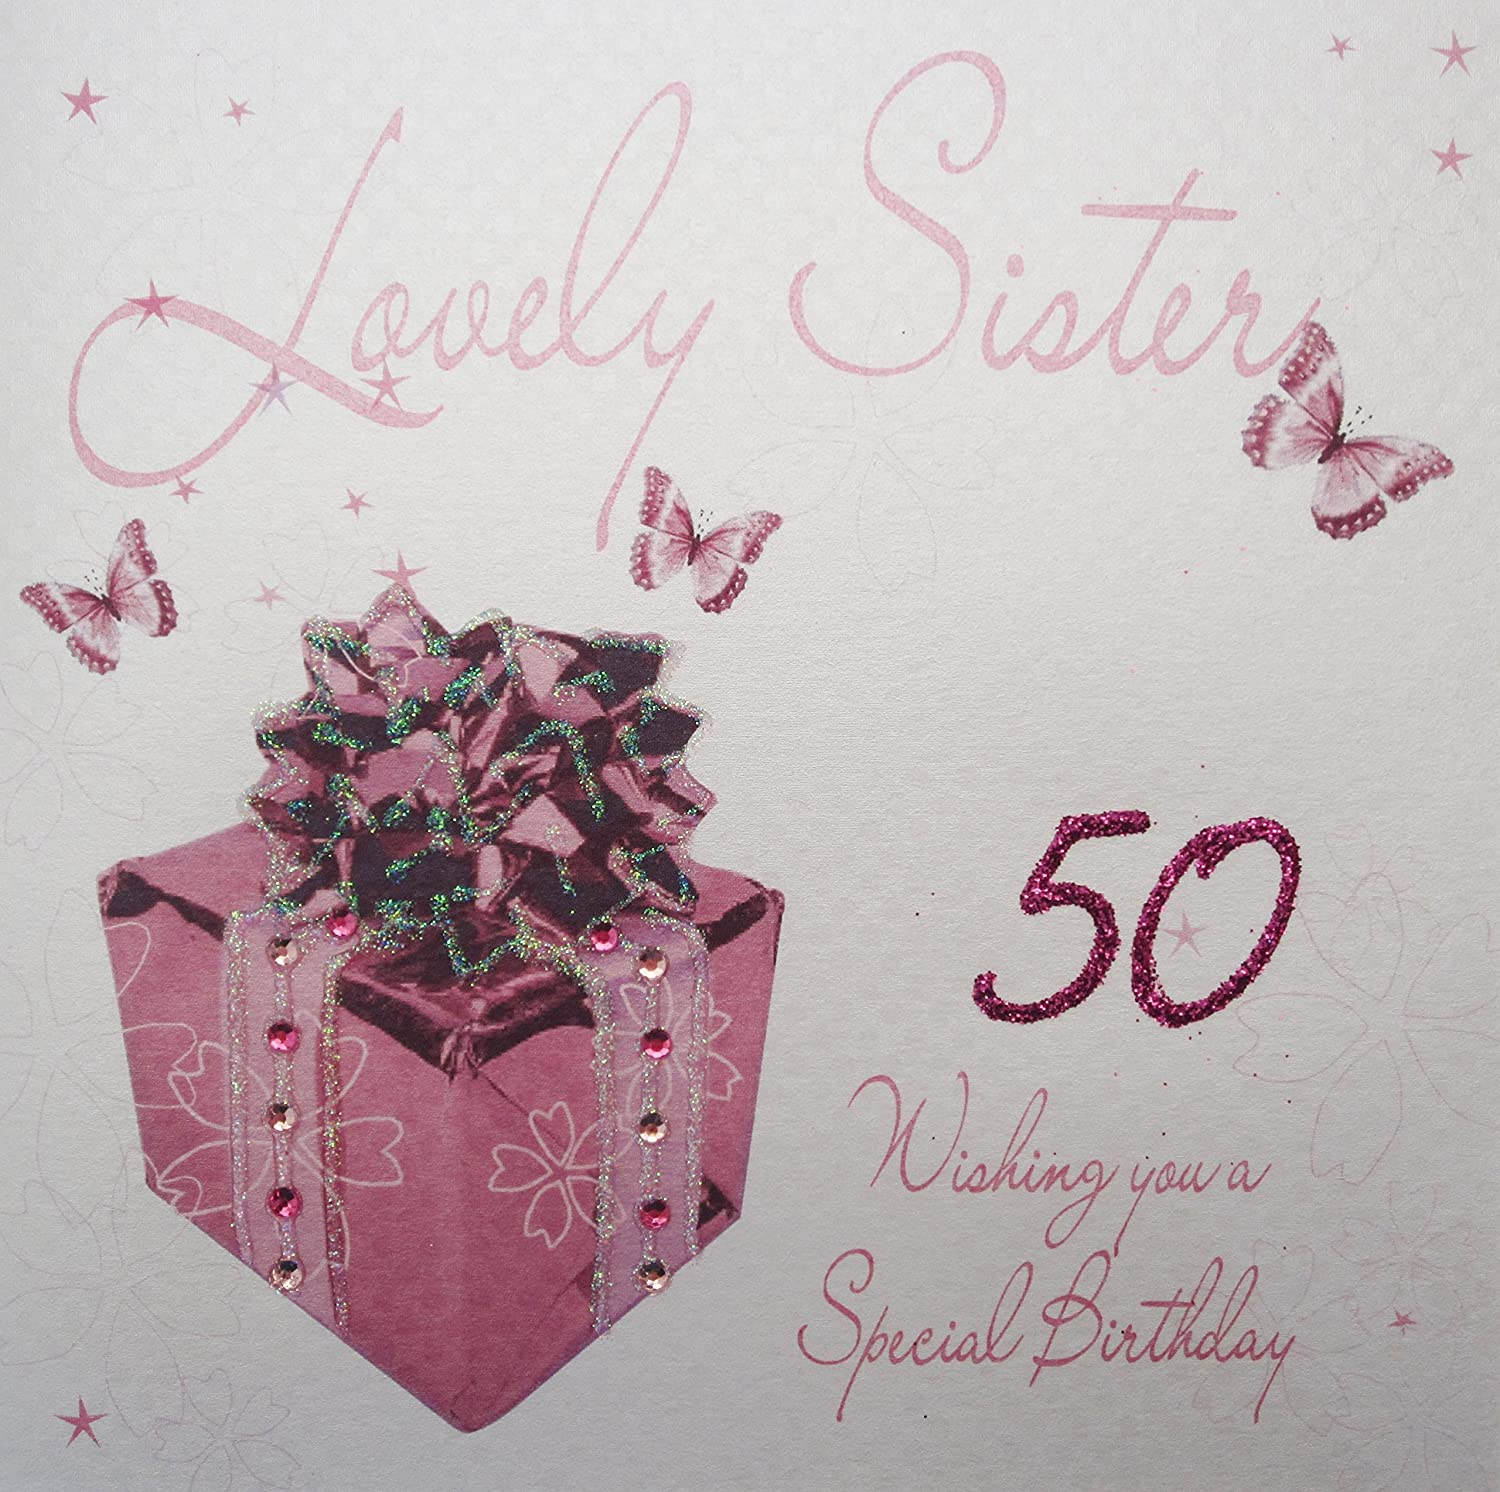 WHITE COTTON CARDS Lovely Sister 50 Wishing You A Special Handmade 50th Birthday Card Pink Present Amazoncouk Kitchen Home